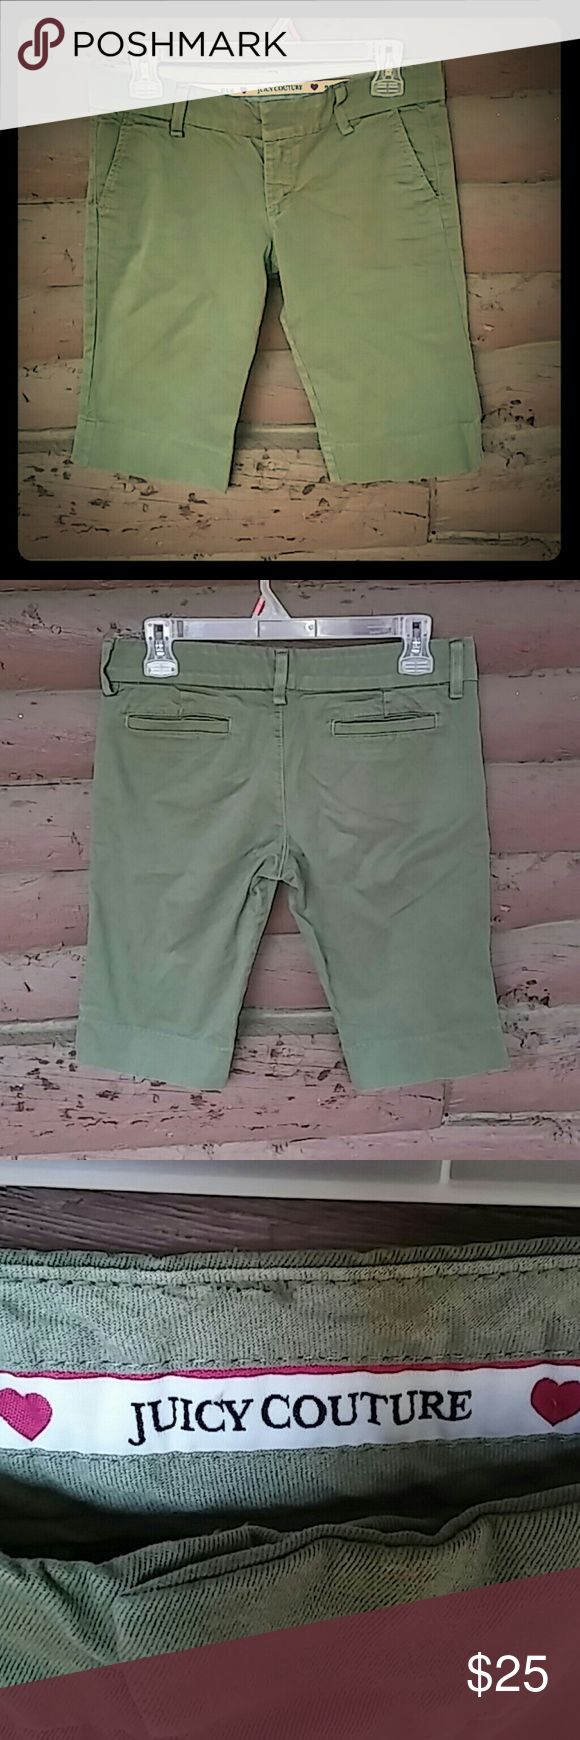 "Juicy Couture Olive Green Shorts Super Cute Juicy Couture Shorts. Lovely Olive green color, and in ""like new"" condition!! Wore them once! Great for a nice summer day out...make me an offer! Juicy Couture Shorts Bermudas"